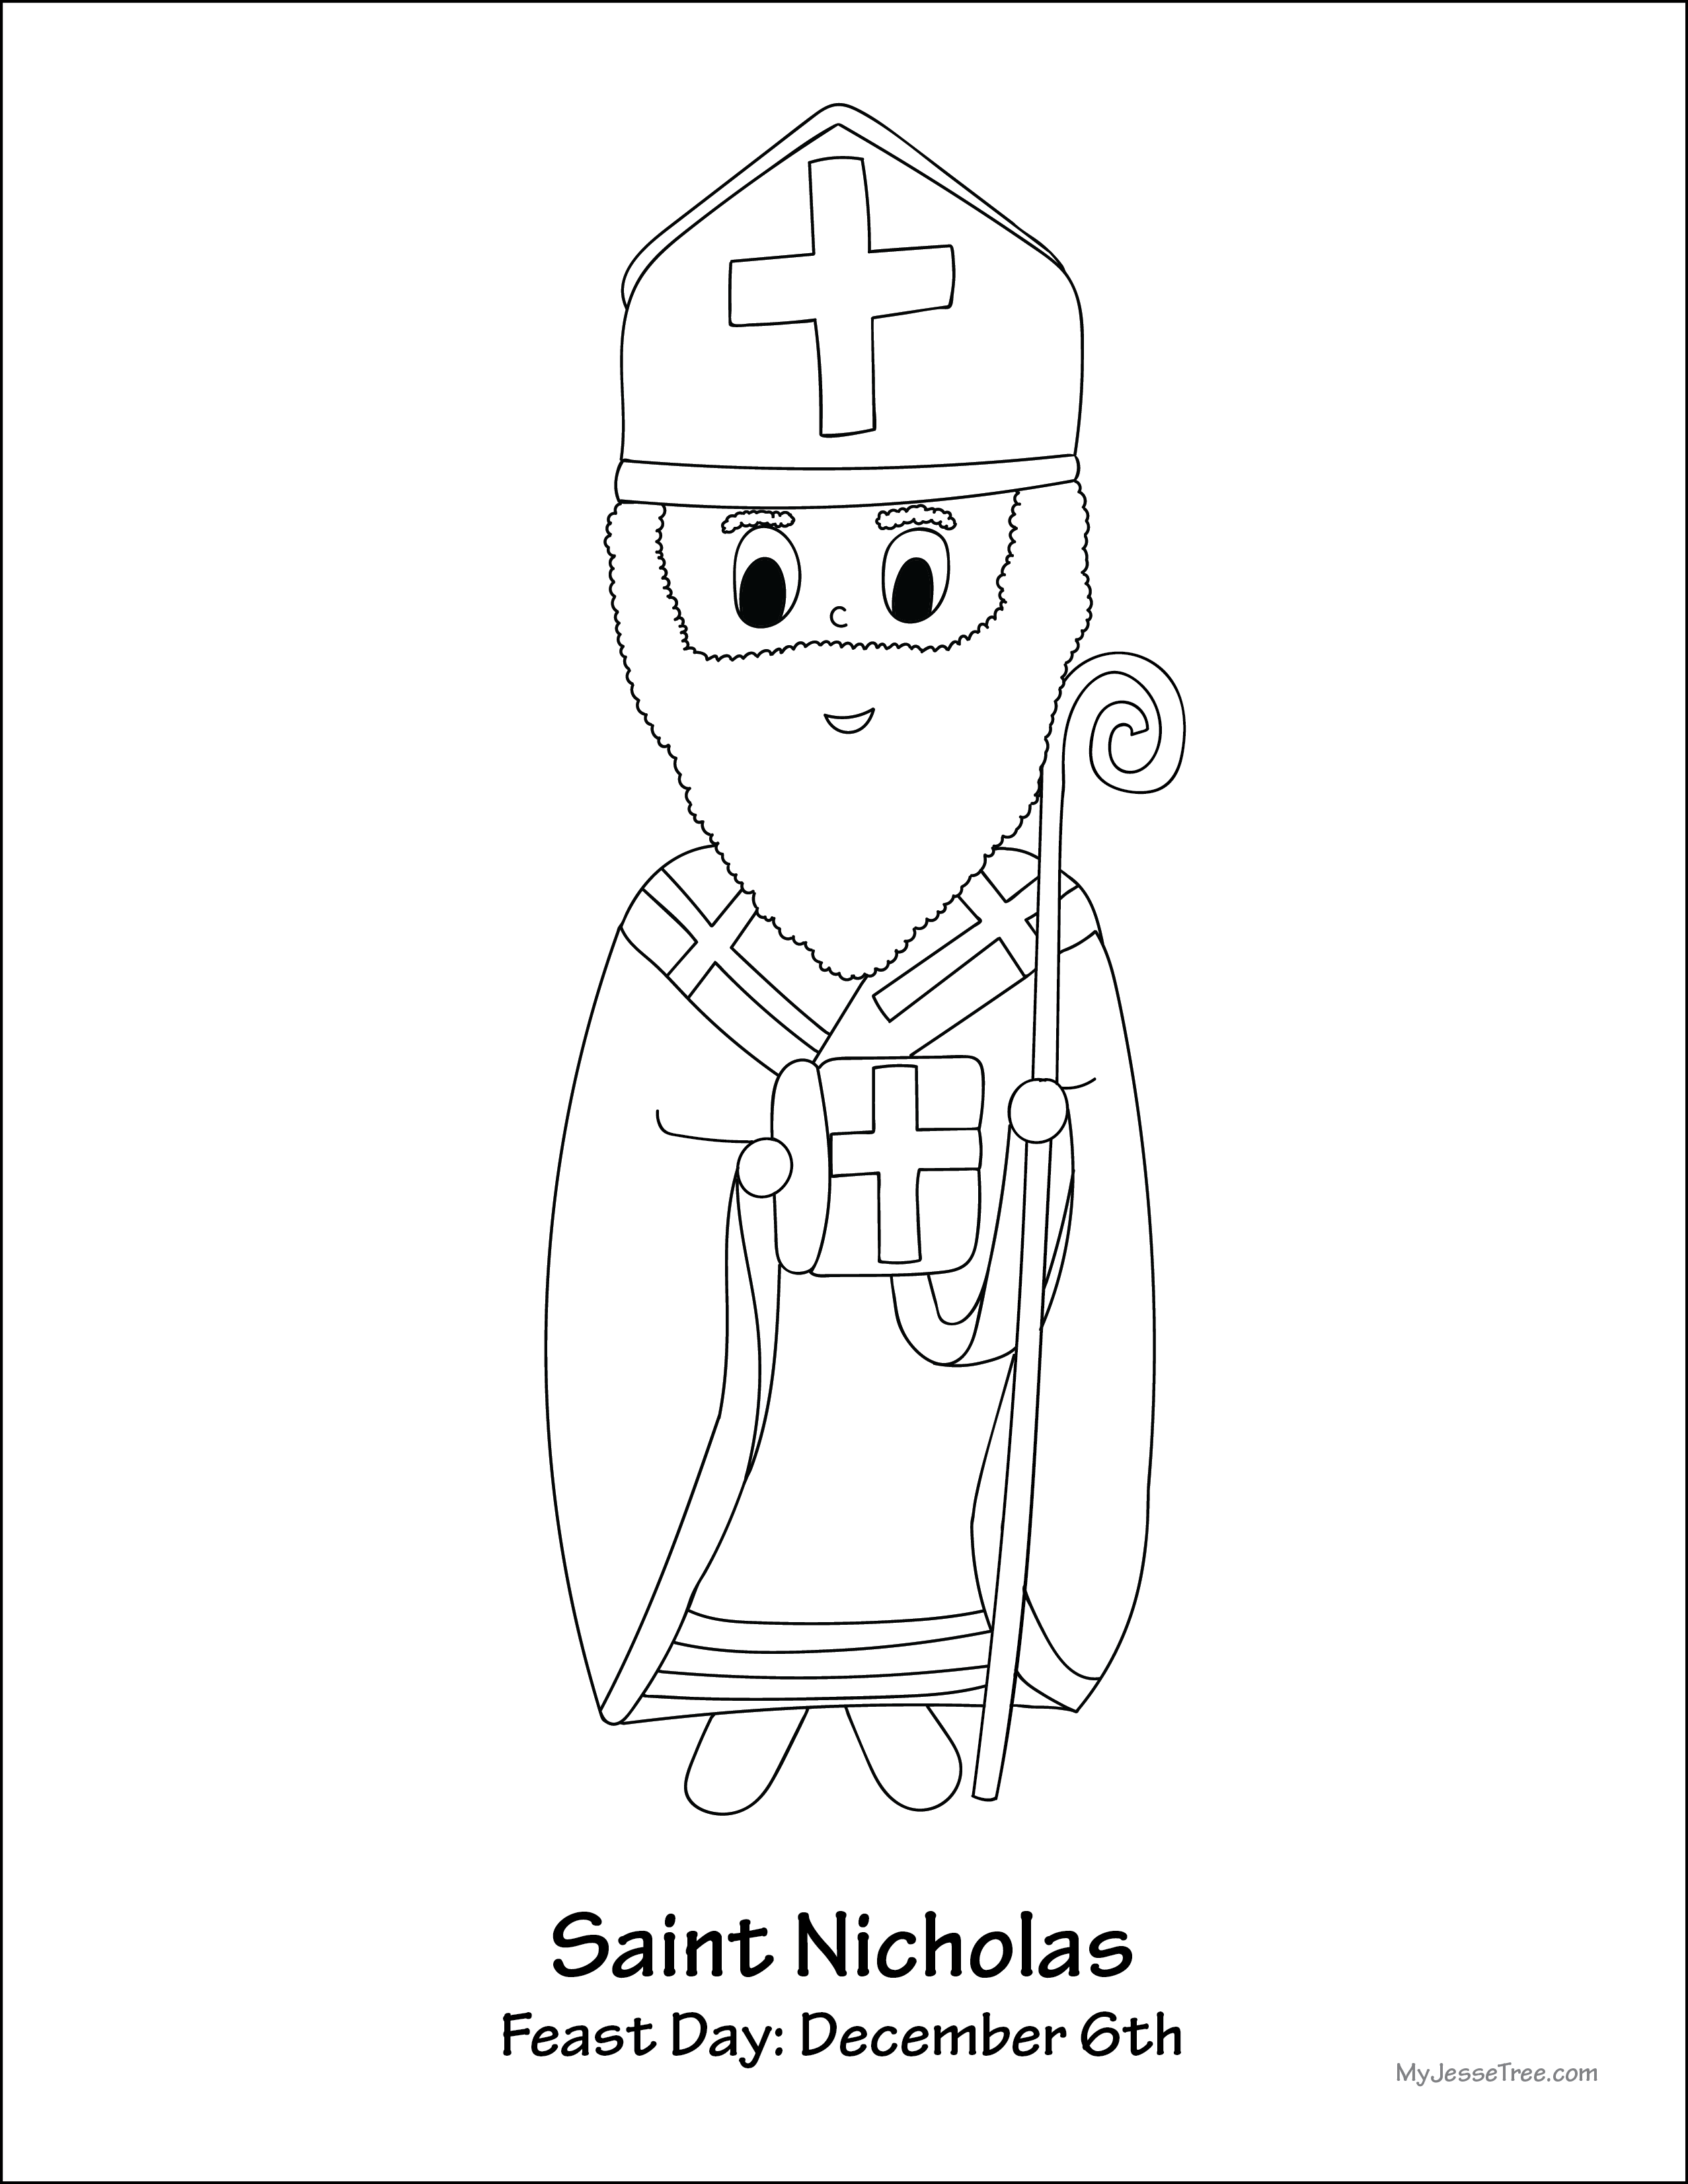 st nicholas coloring page saints coloring pages catholic playground page coloring nicholas st